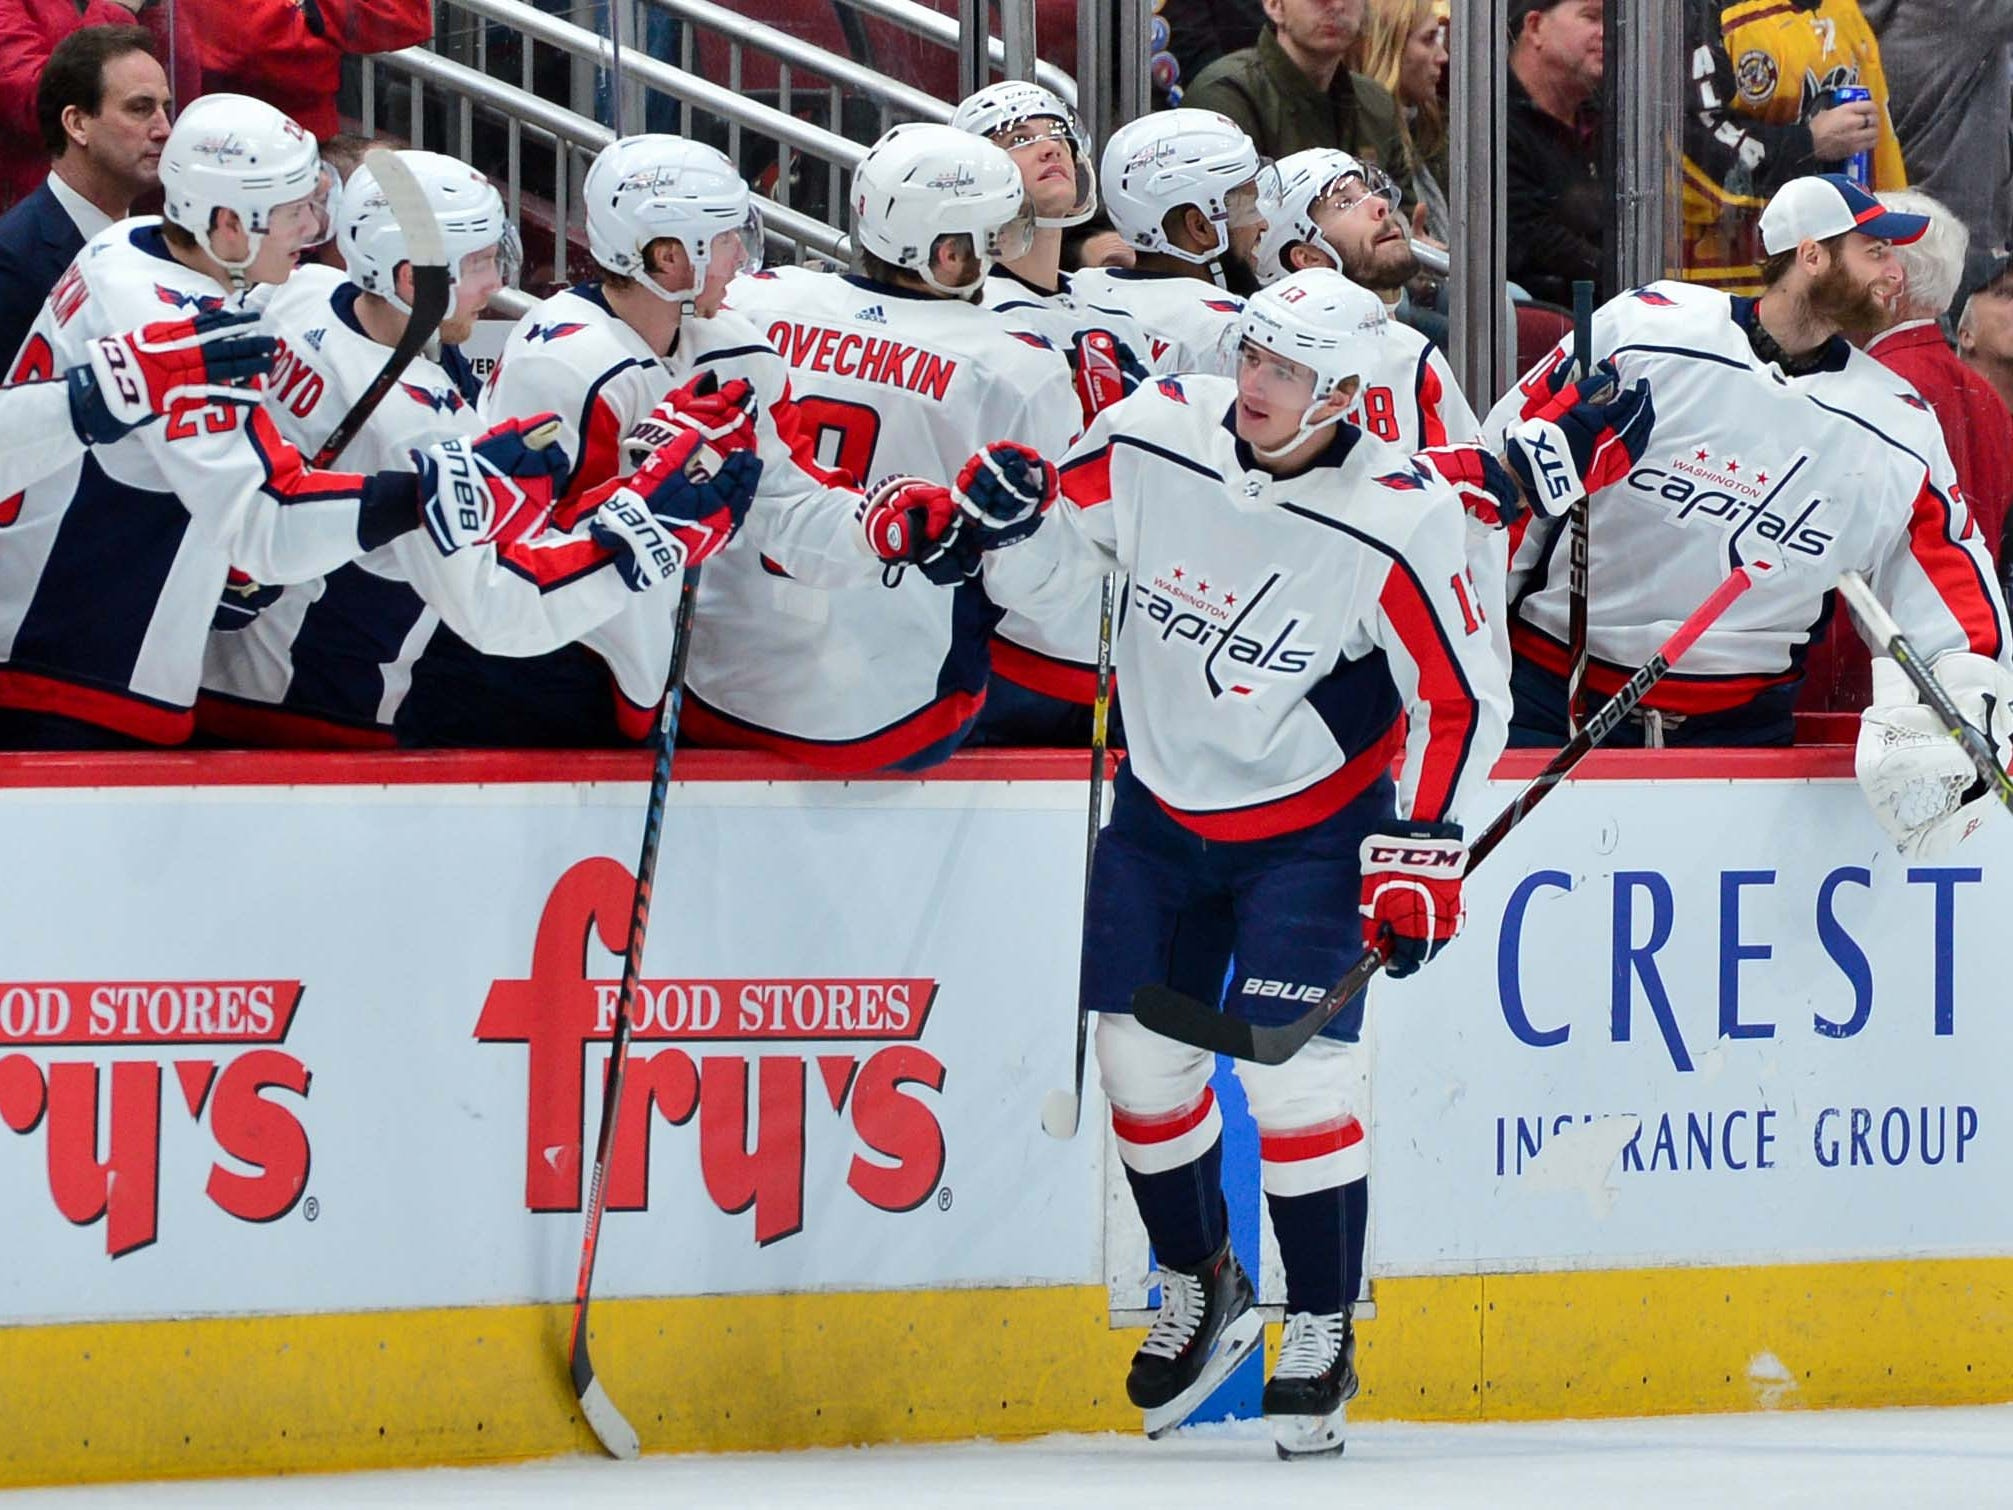 Dec 6, 2018; Glendale, AZ, USA; Washington Capitals left wing Jakub Vrana (13) celebrates with teammates after scoring a goal in the second period against the Arizona Coyotes at Gila River Arena. Mandatory Credit: Matt Kartozian-USA TODAY Sports